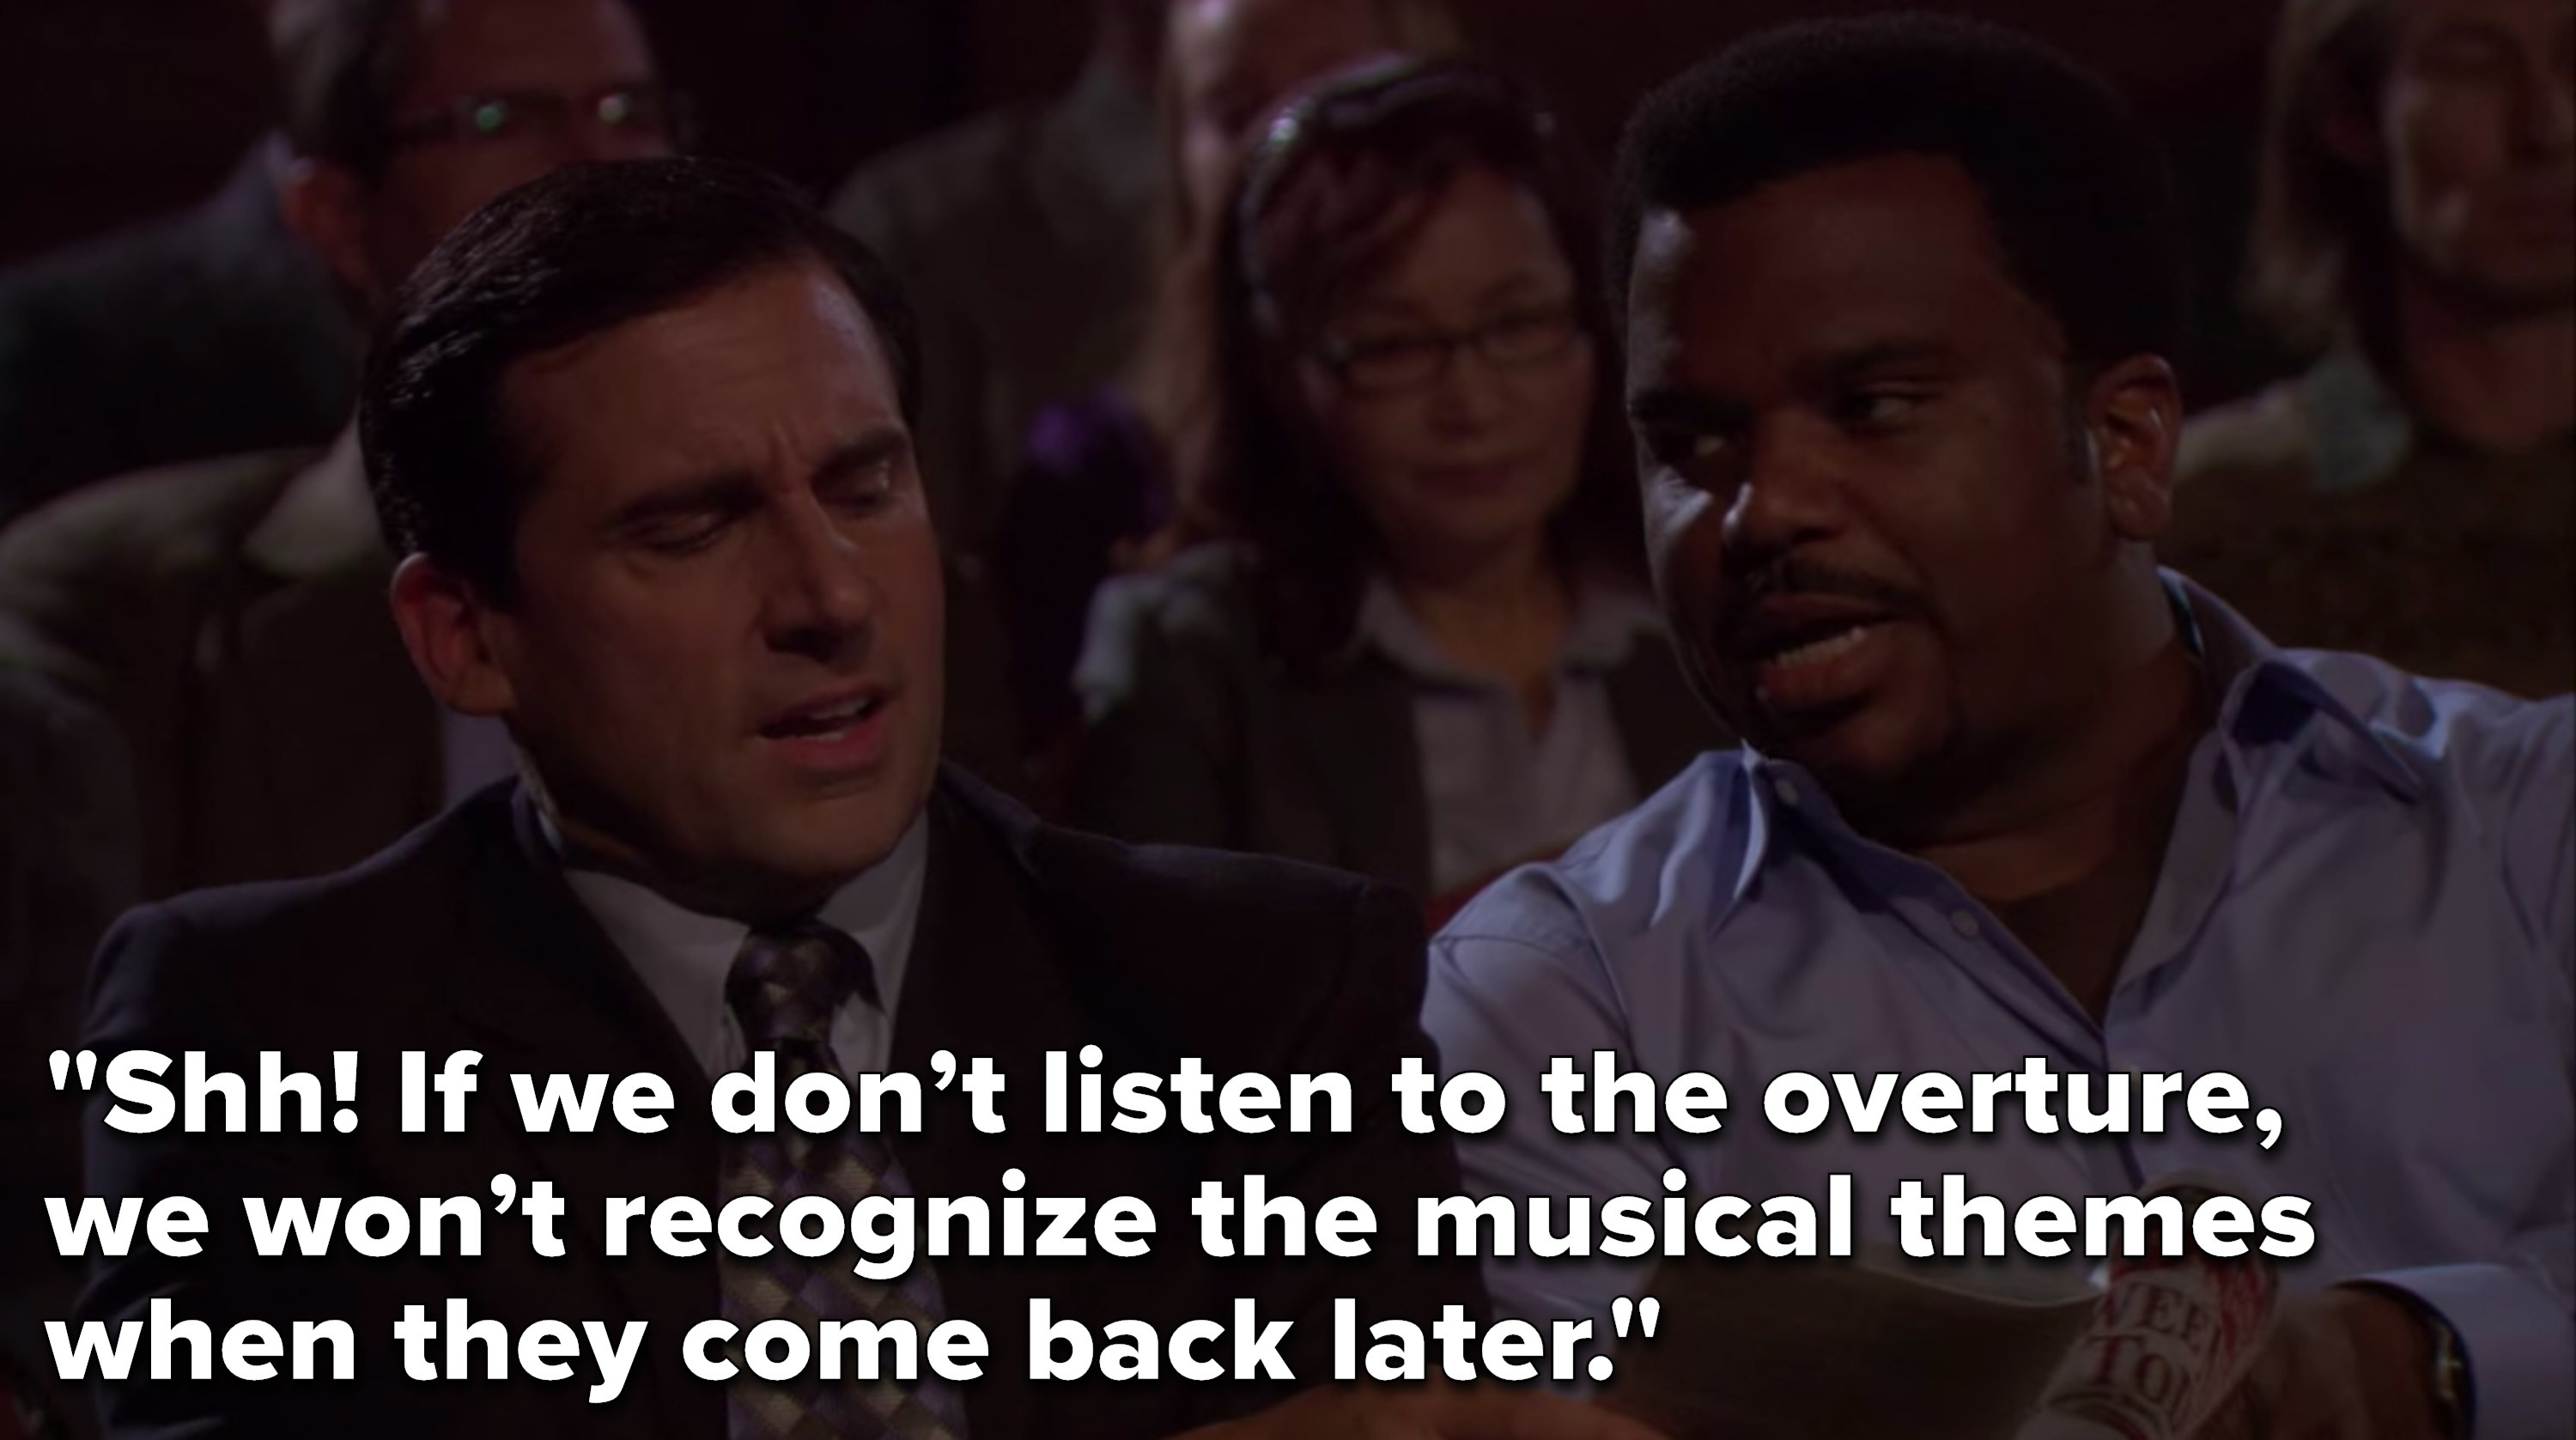 """Darryl says to Michael, """"Shh, if we don't listen to the overture, we won't recognize the musical themes when they come back later"""""""